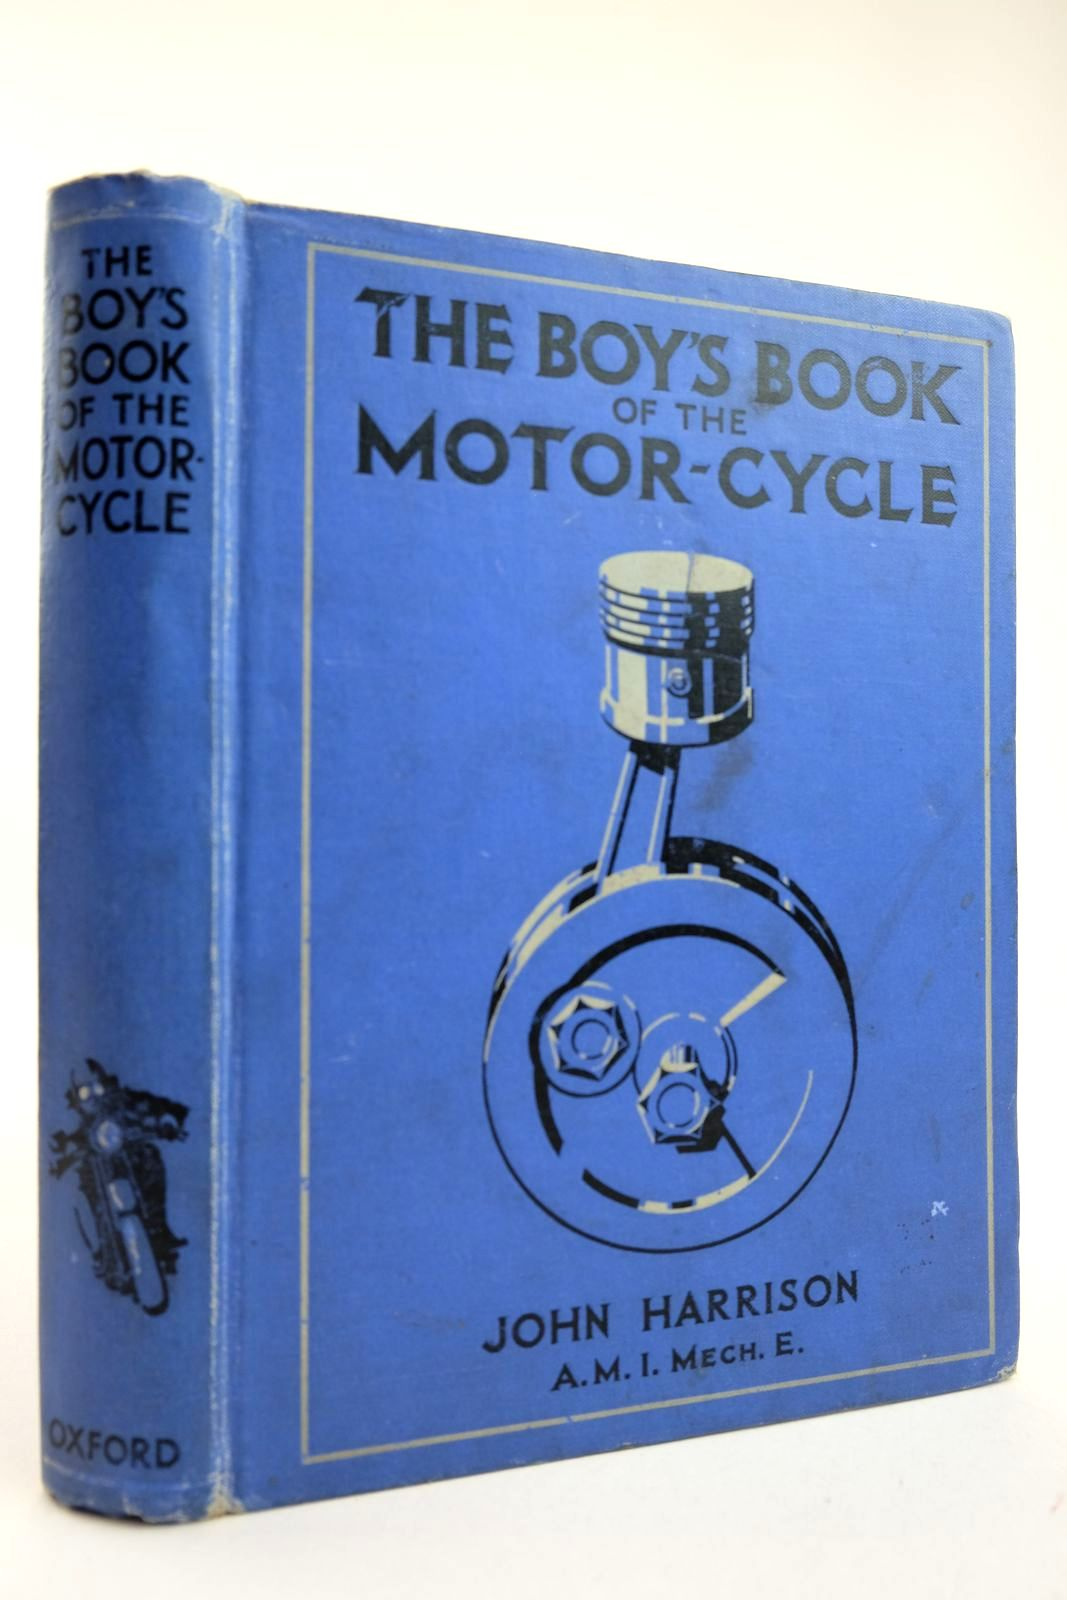 Photo of THE BOY'S BOOK OF THE MOTOR-CYCLE- Stock Number: 2132369